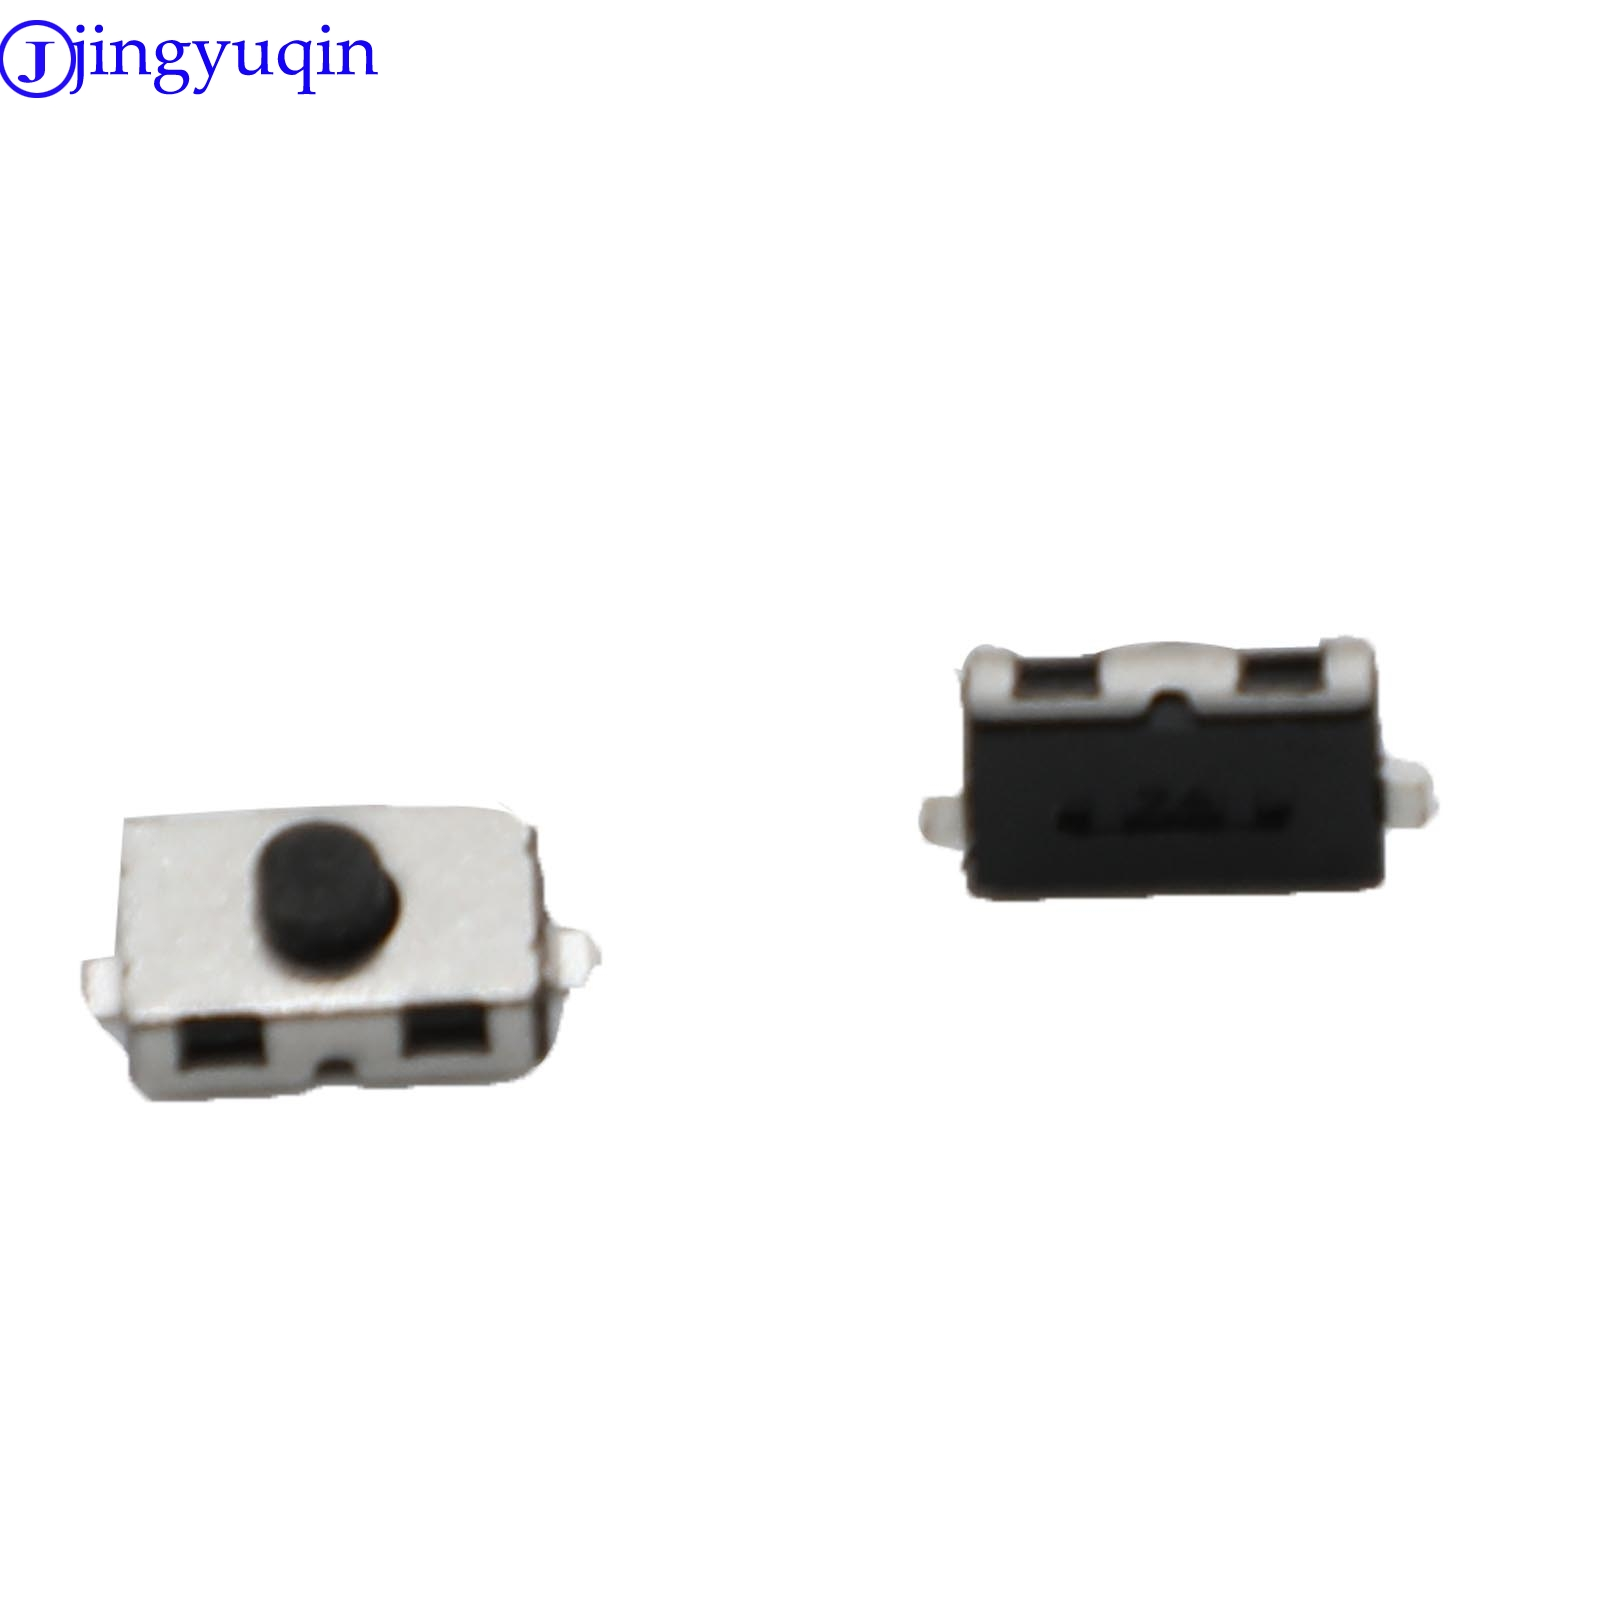 Jingyuqin 2pcs/lot Touch Swicth For Car Key For Citroen Peugeot Opel Tactile Switch Push Button Size 6*3.8mm